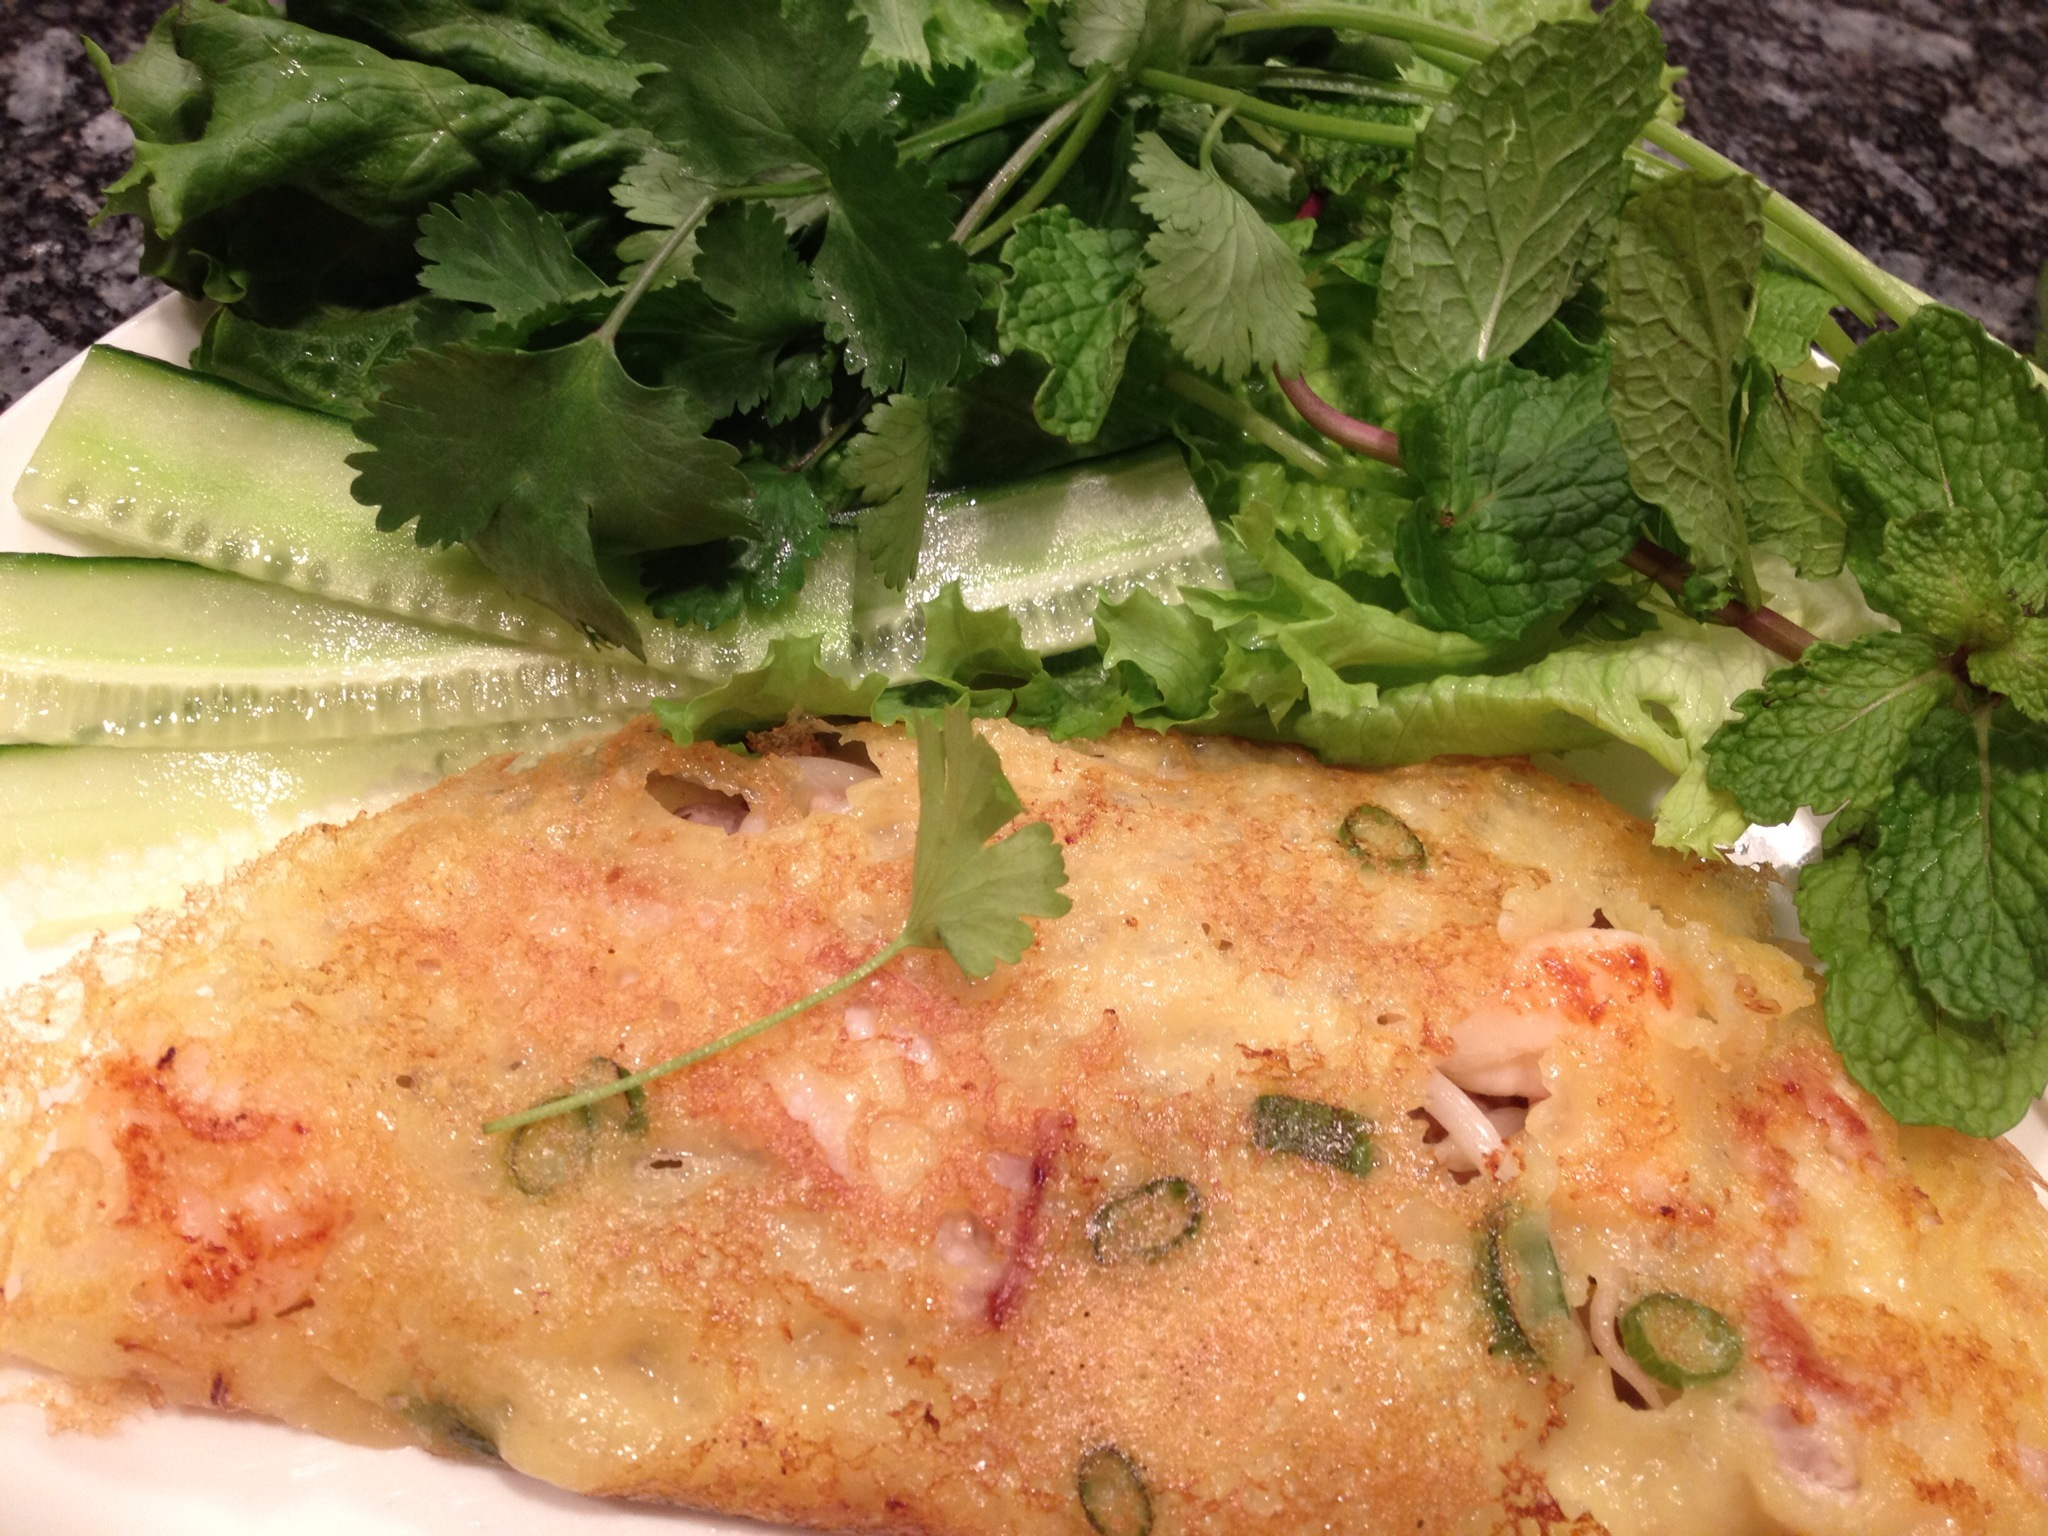 Banh xeo is a popular Vietnamese crispy, savory crepe filled with pork ...